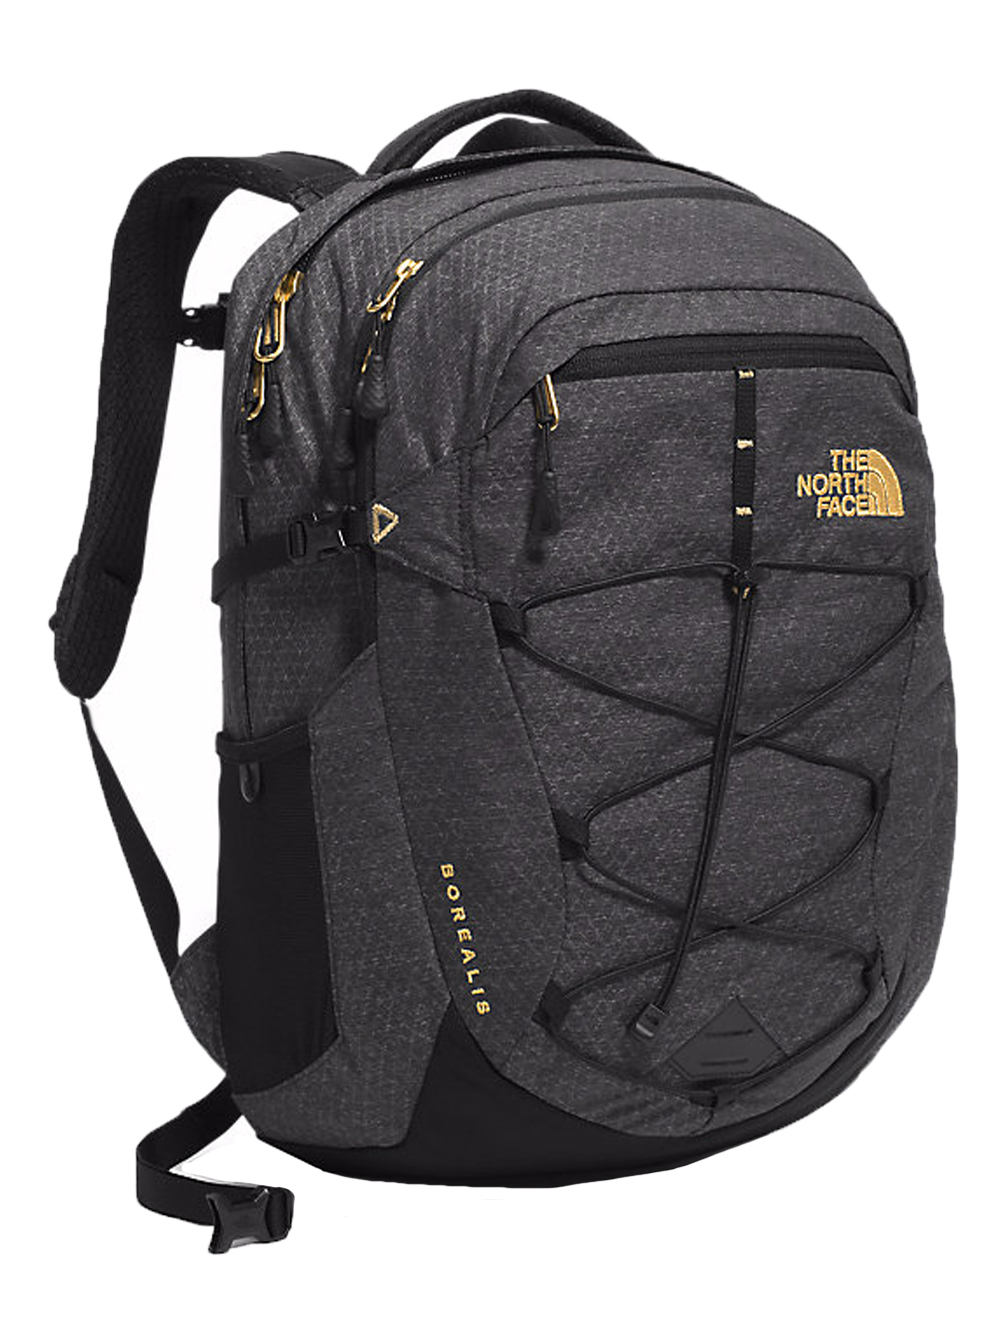 The North Face Borealis Backpack - Women's - black/24k gold, one size